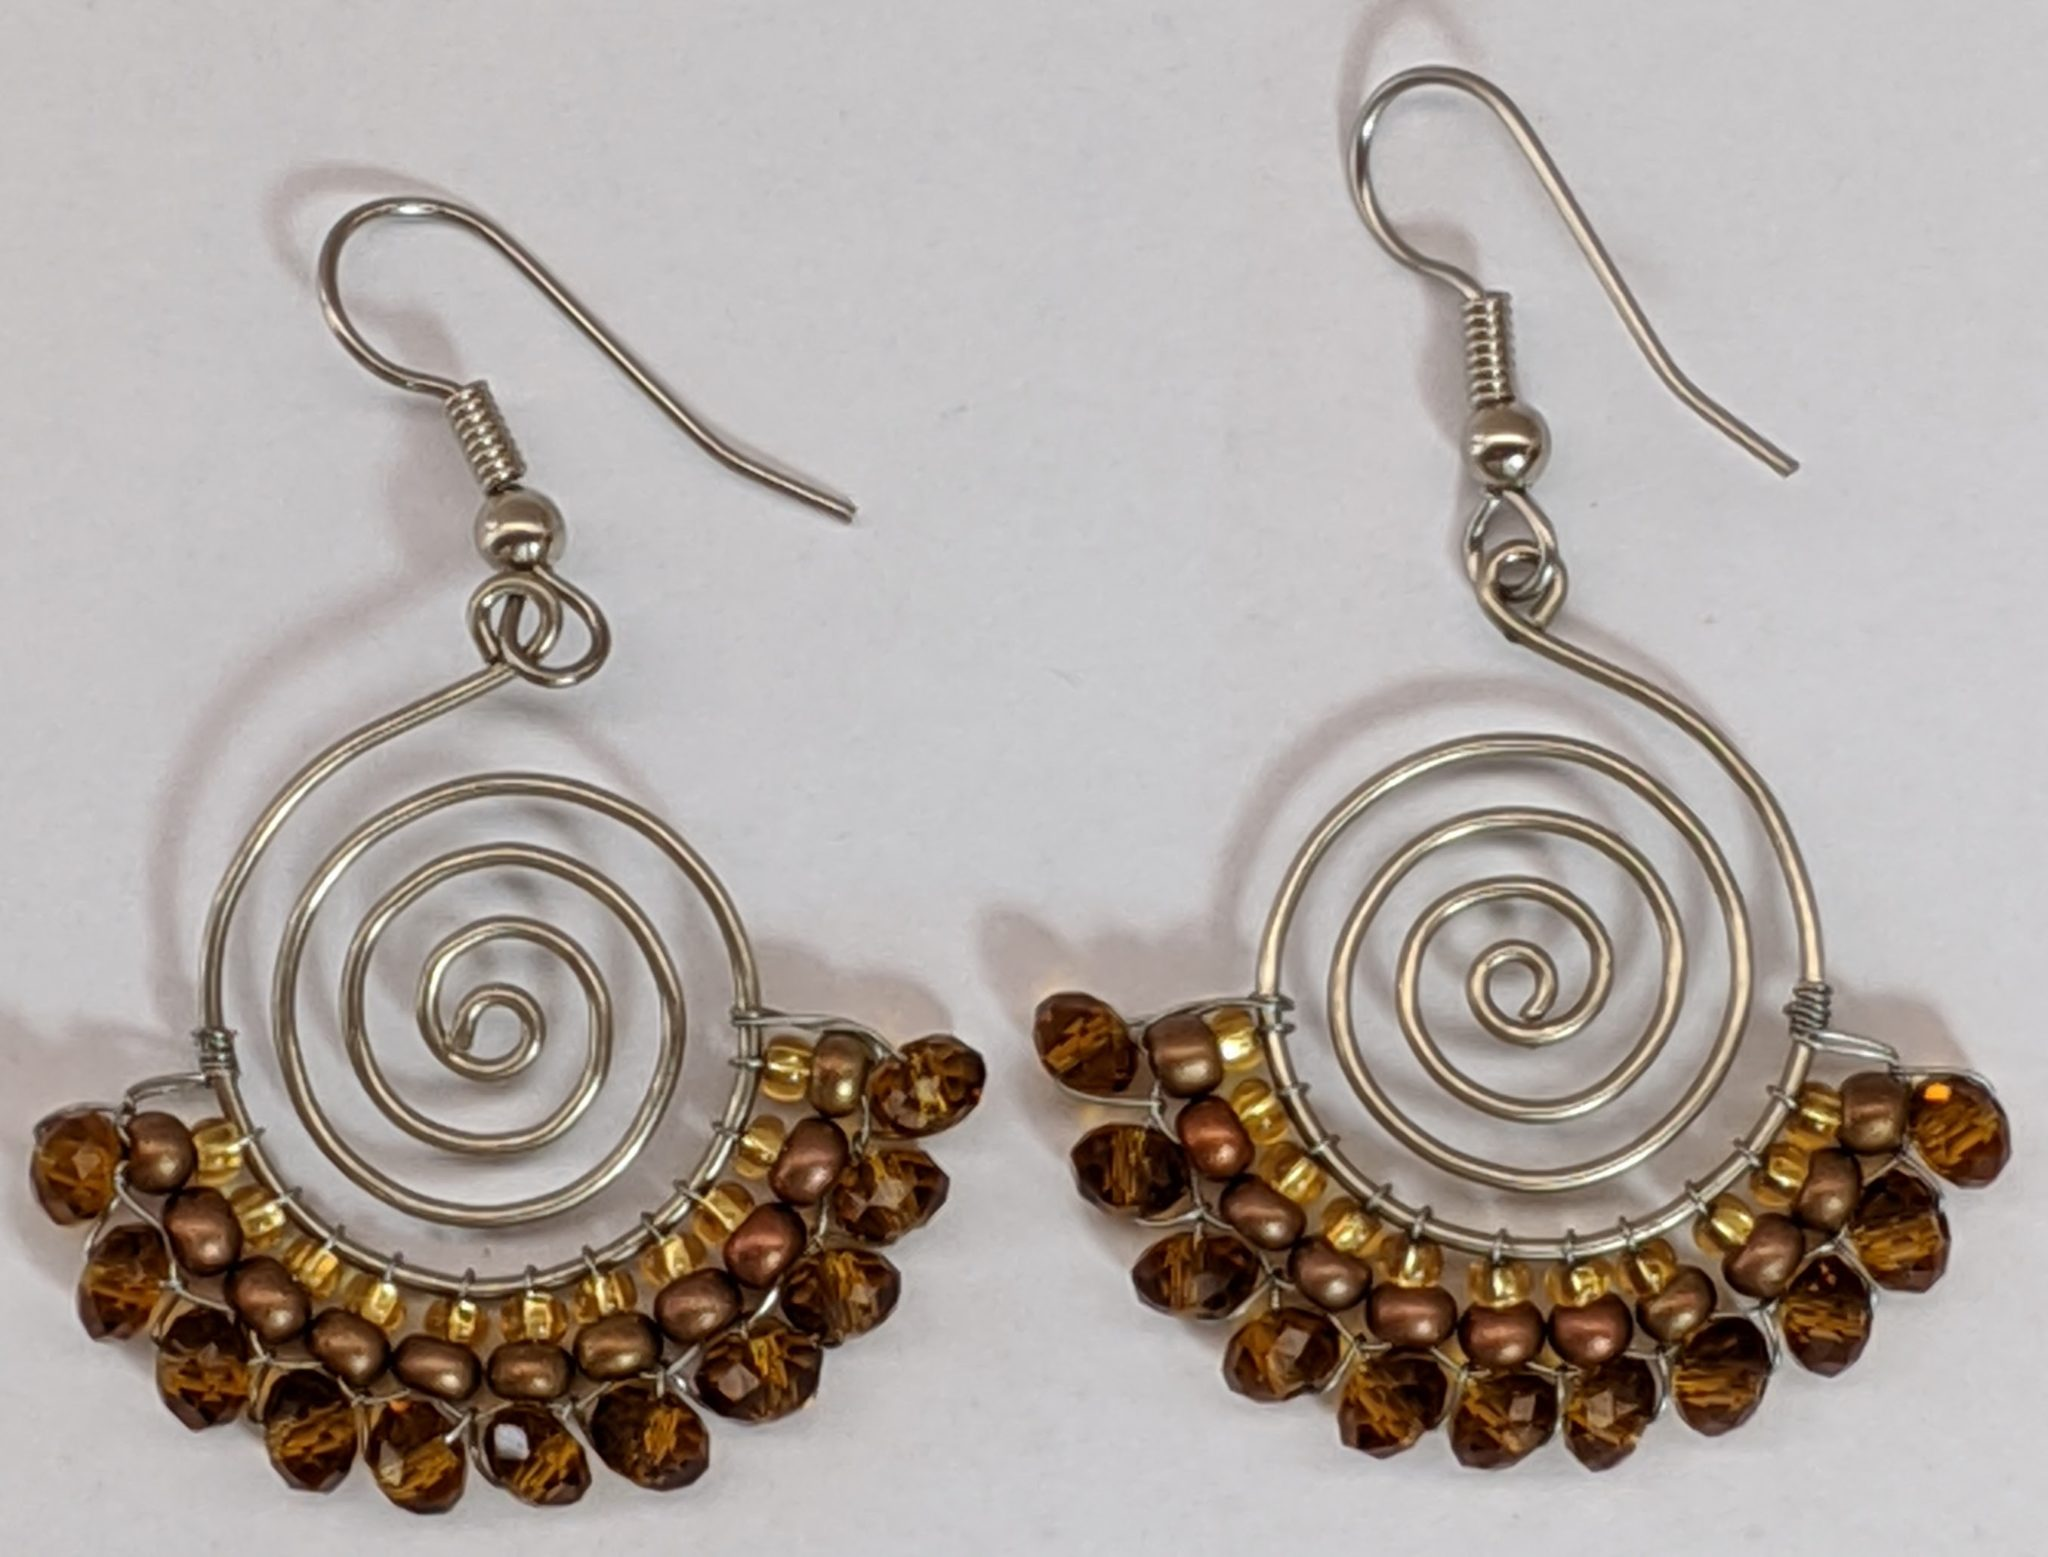 Spiral Skirt Beaded Earrings - Golds